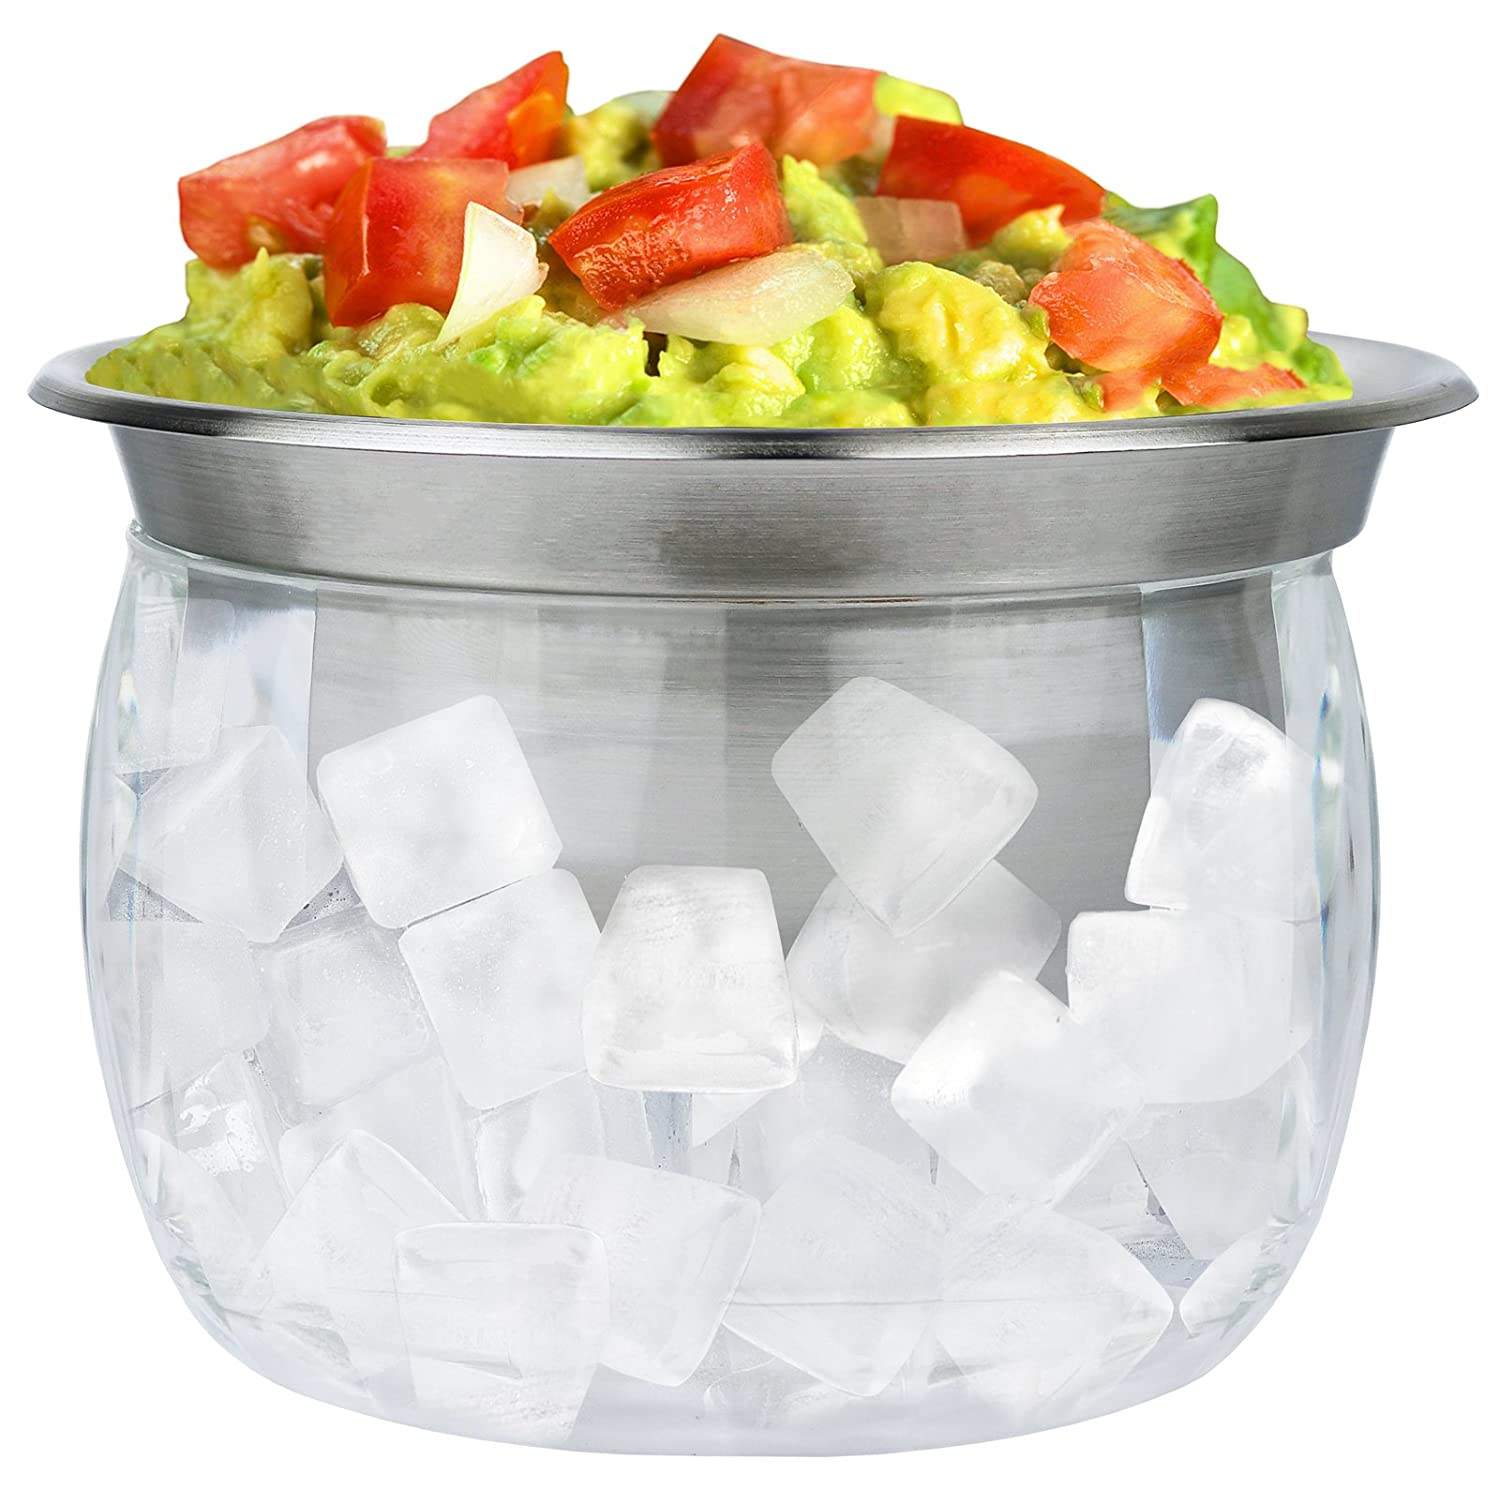 Estilo Stainless Steel Serving Bowl with Acrylic Ice Bowl Base